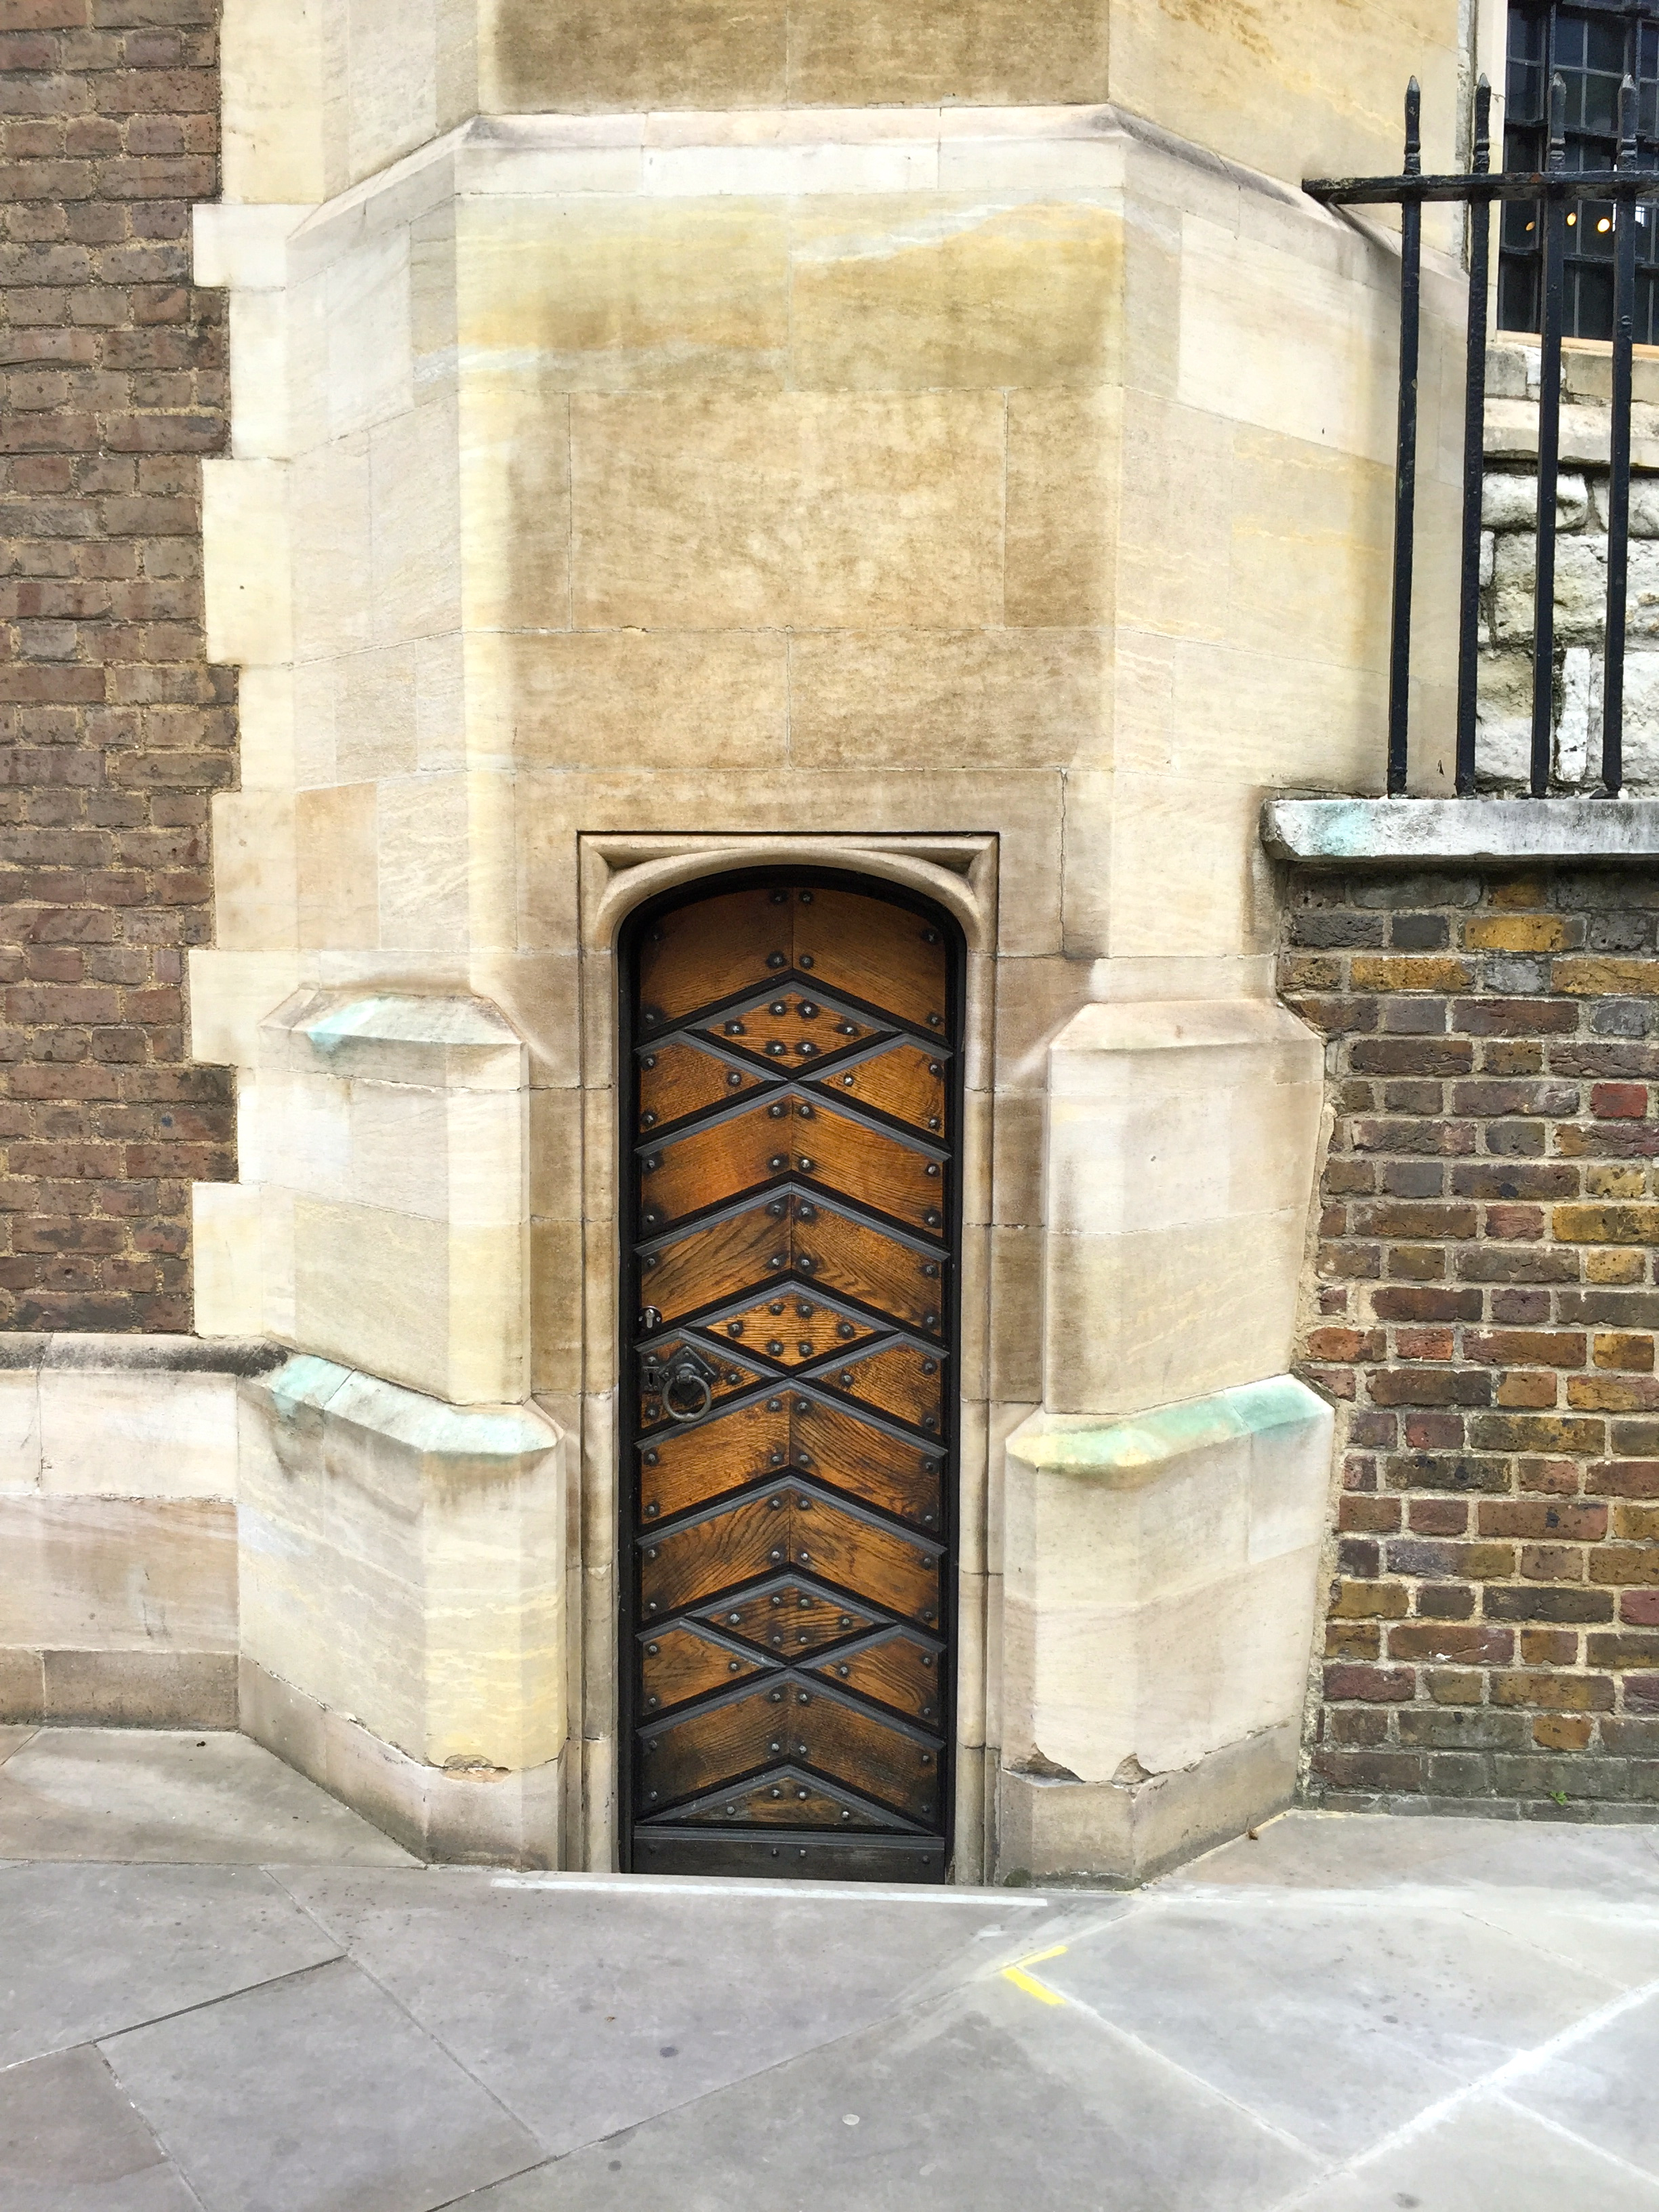 These two lovely doors are both from the church of All-Hallows-By-The-Tower in London England. & Thursday Doors u2013 All-Hallows-By-The-Tower London | Journey To Ambeth